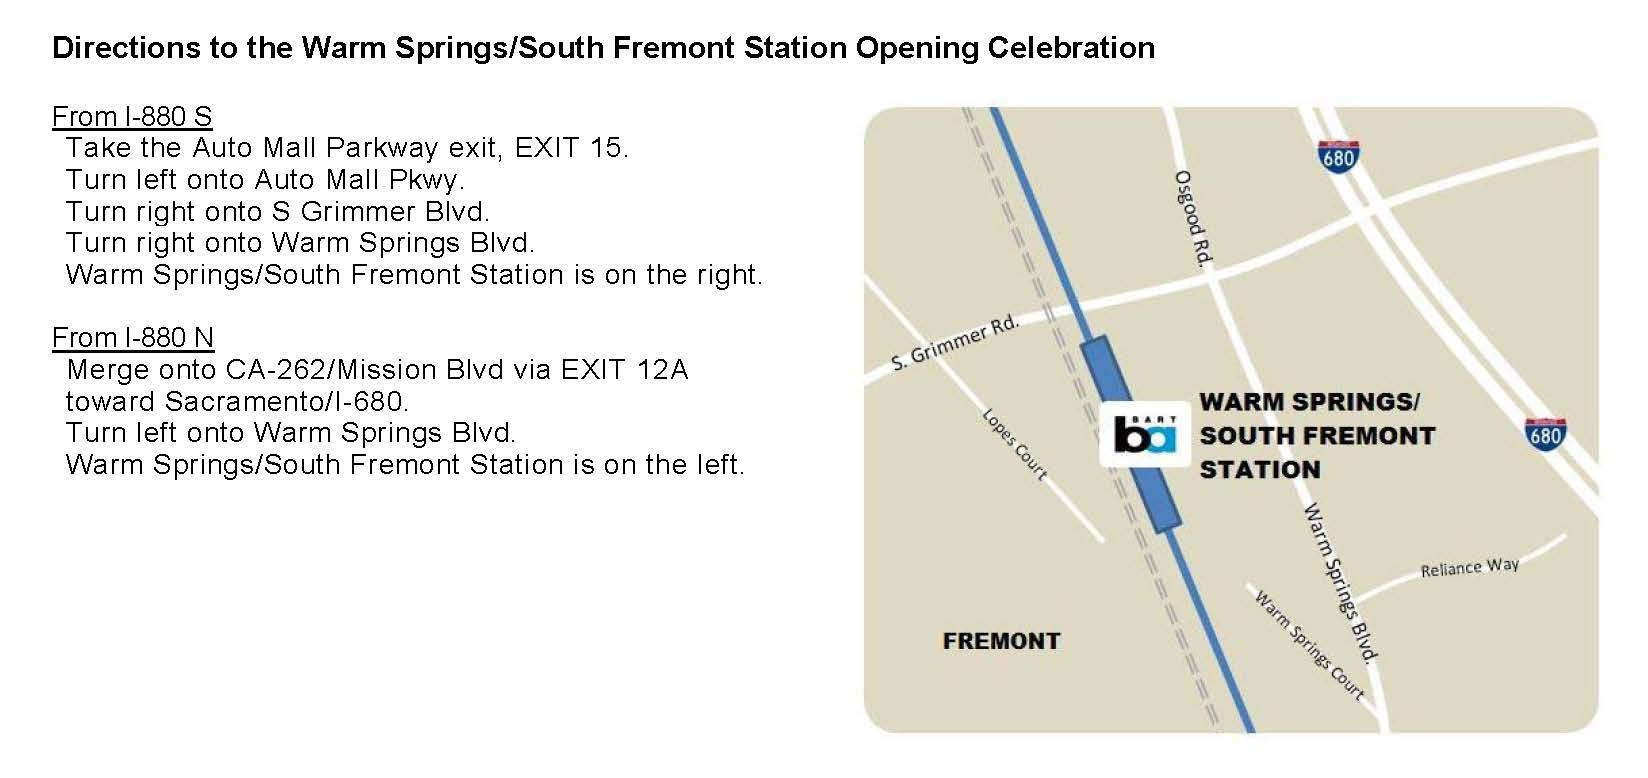 Directions to Warm Springs / South Fremont Station